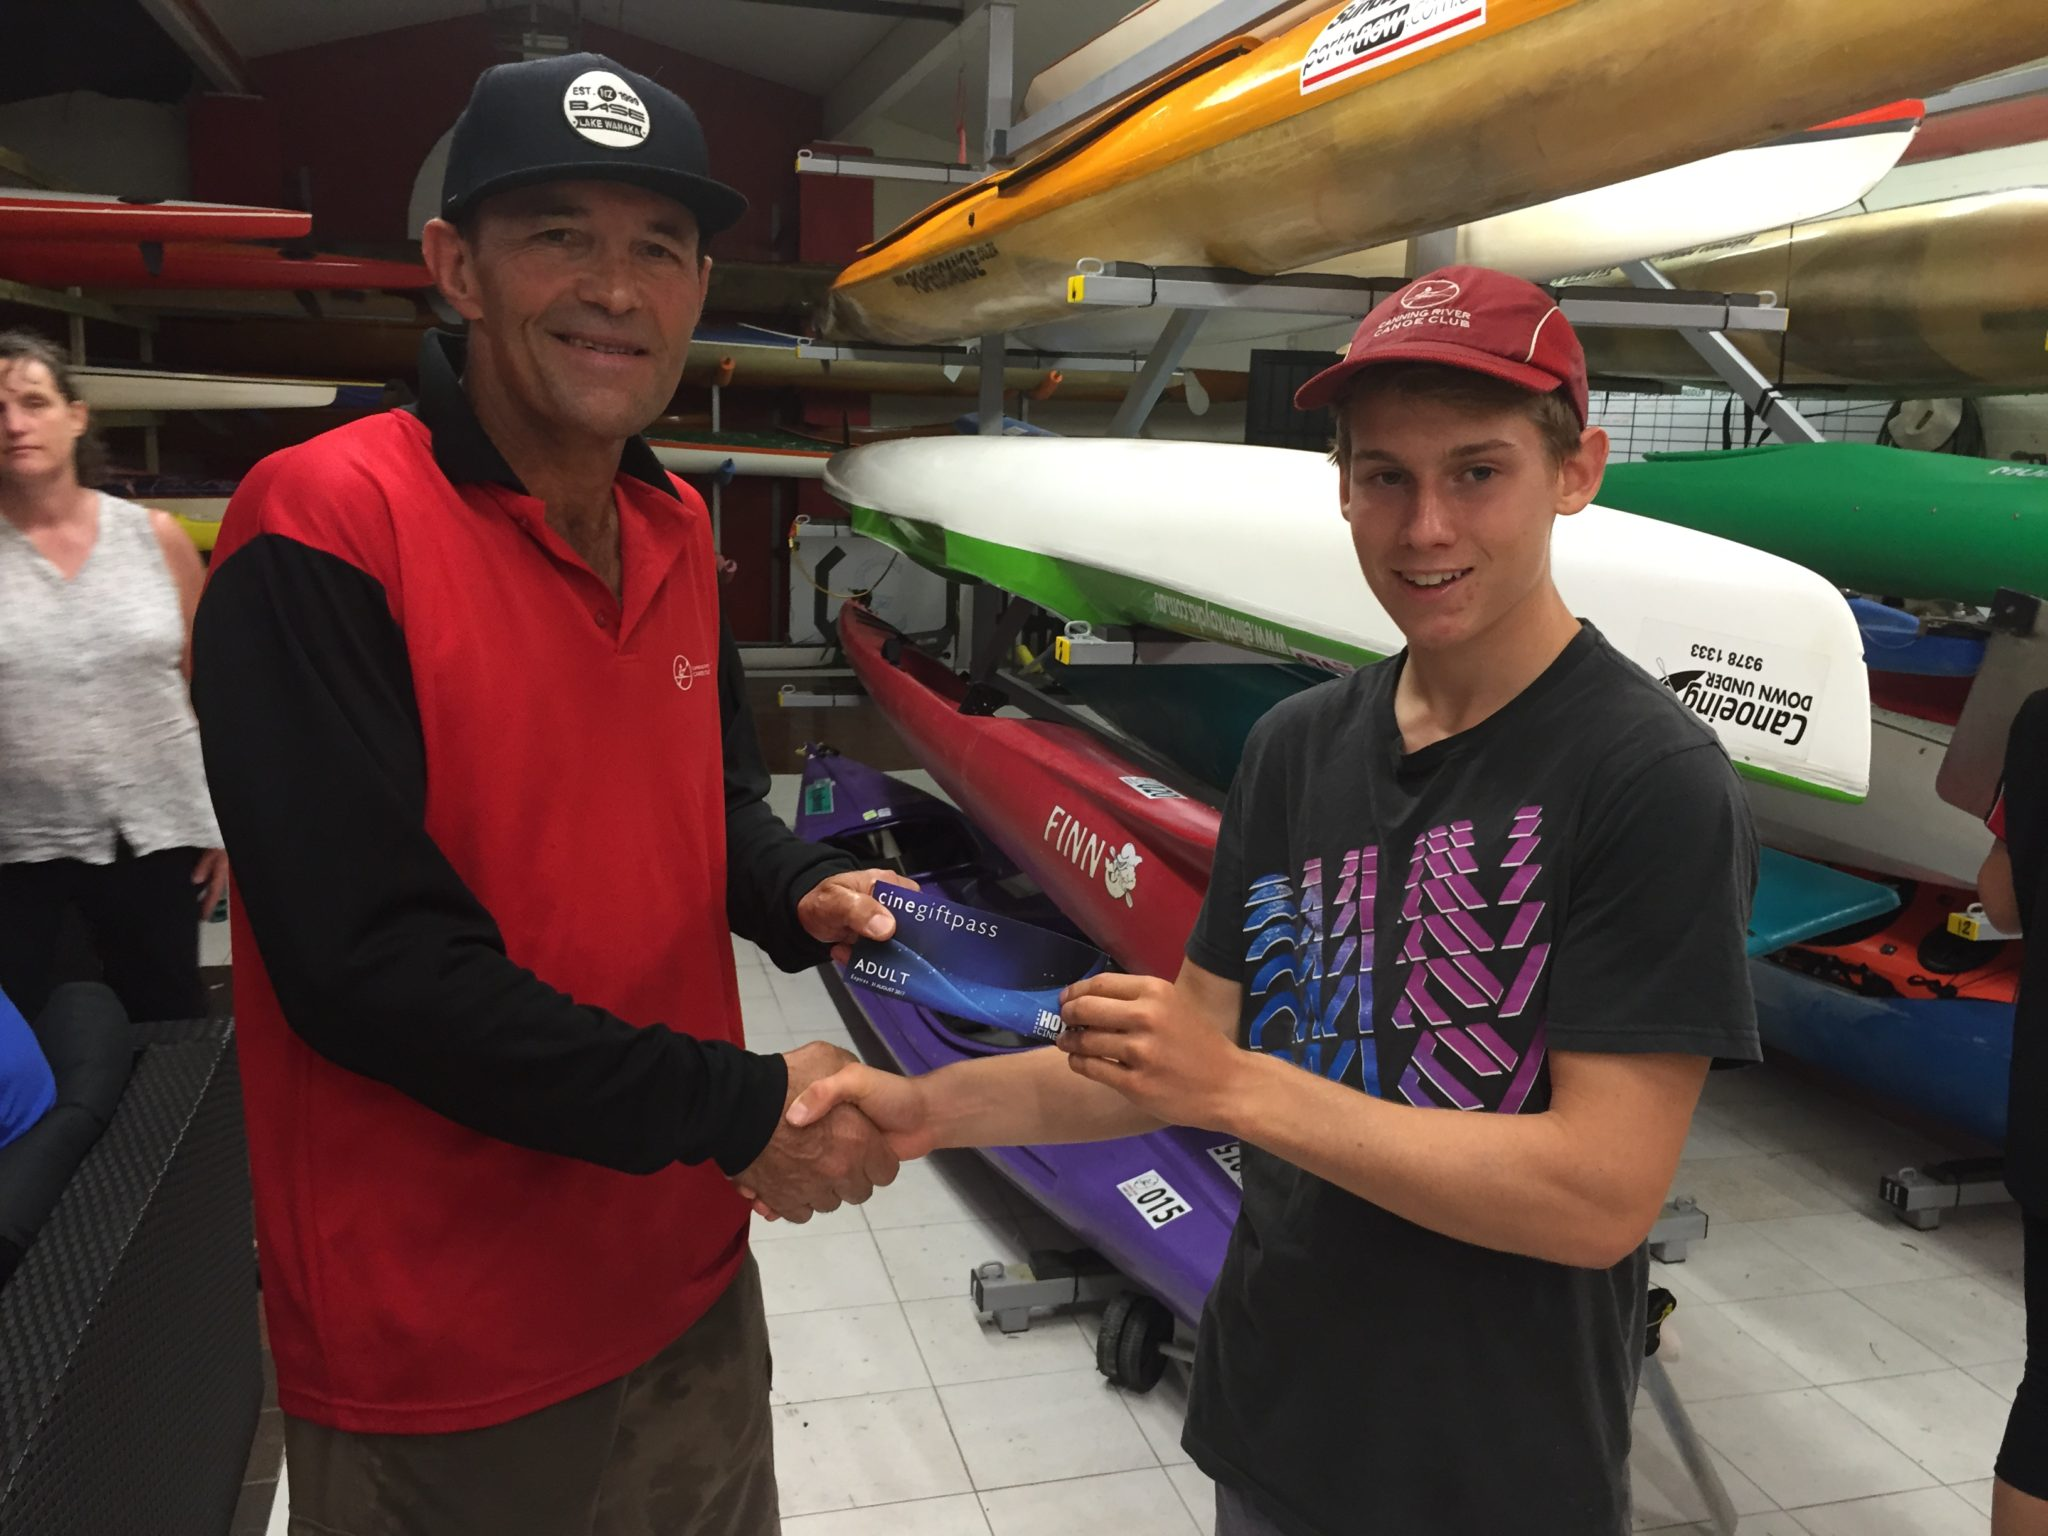 Tues 14th March 2017, Tom Green just back from winning medals at the Kayaking Nationals in Sydney presenting Doug Hodson with a movie voucher